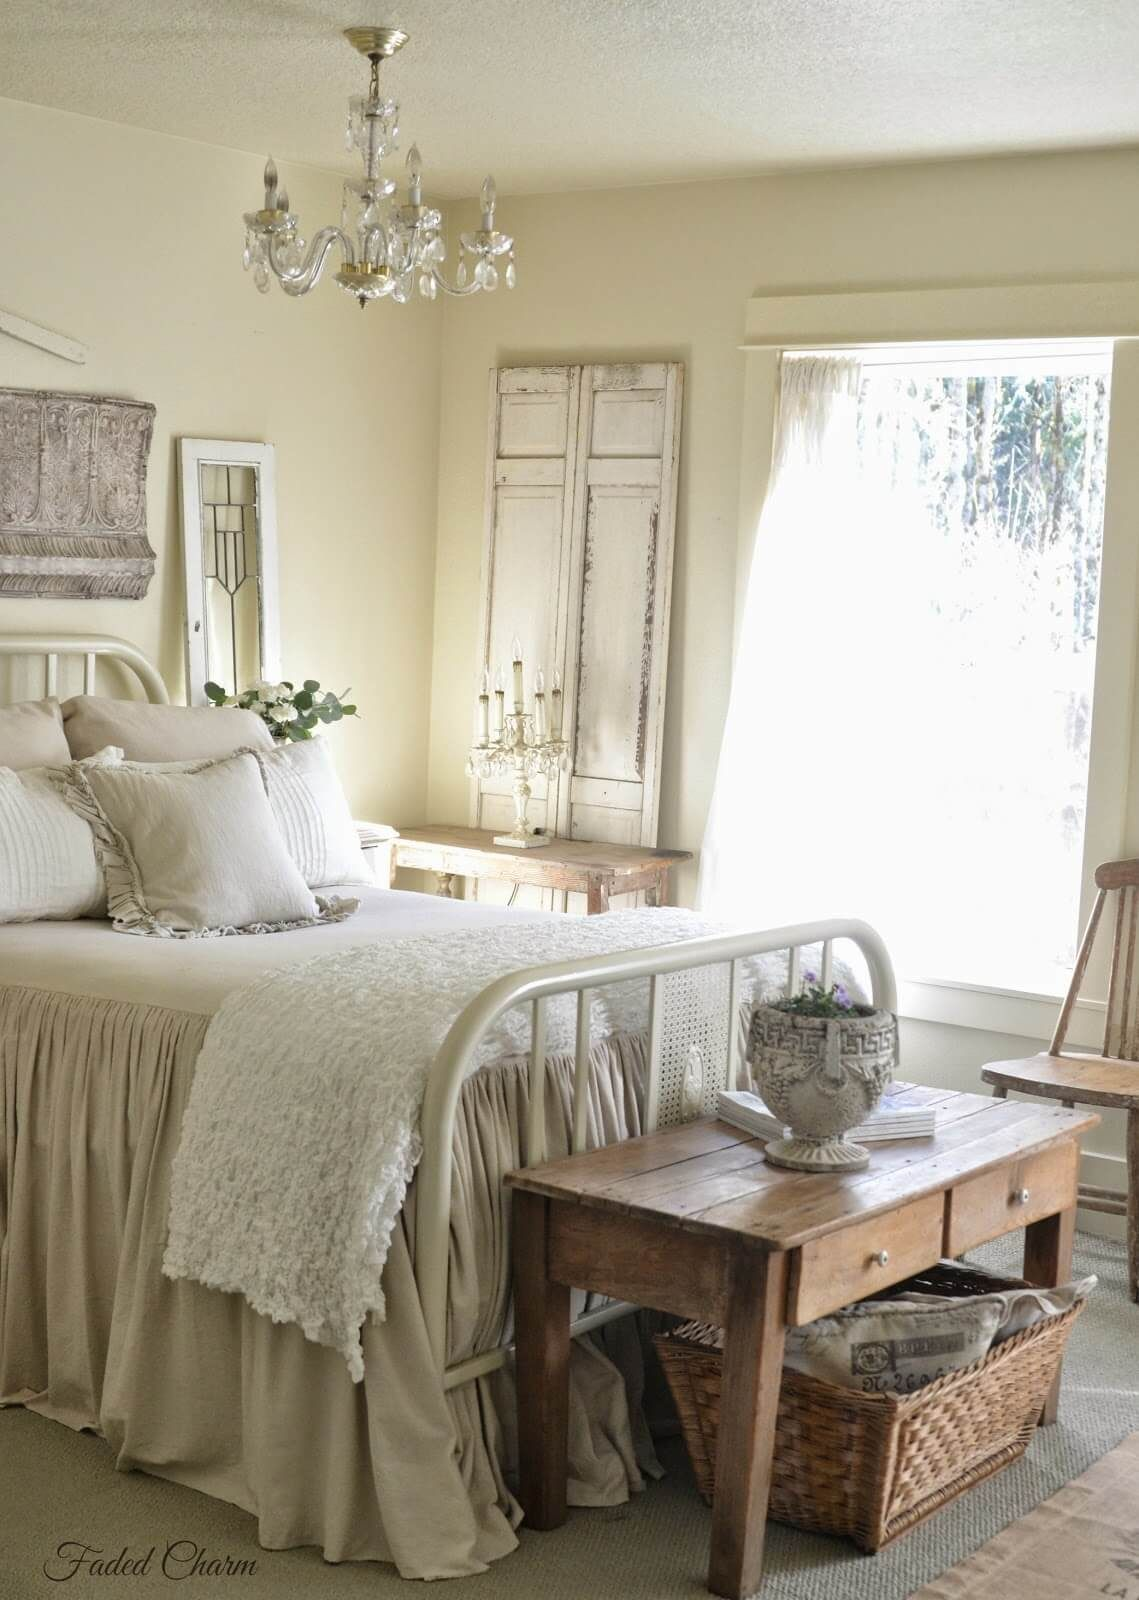 Charming Bedroom With Antique Bed Frame Shabby Chic Bedrooms